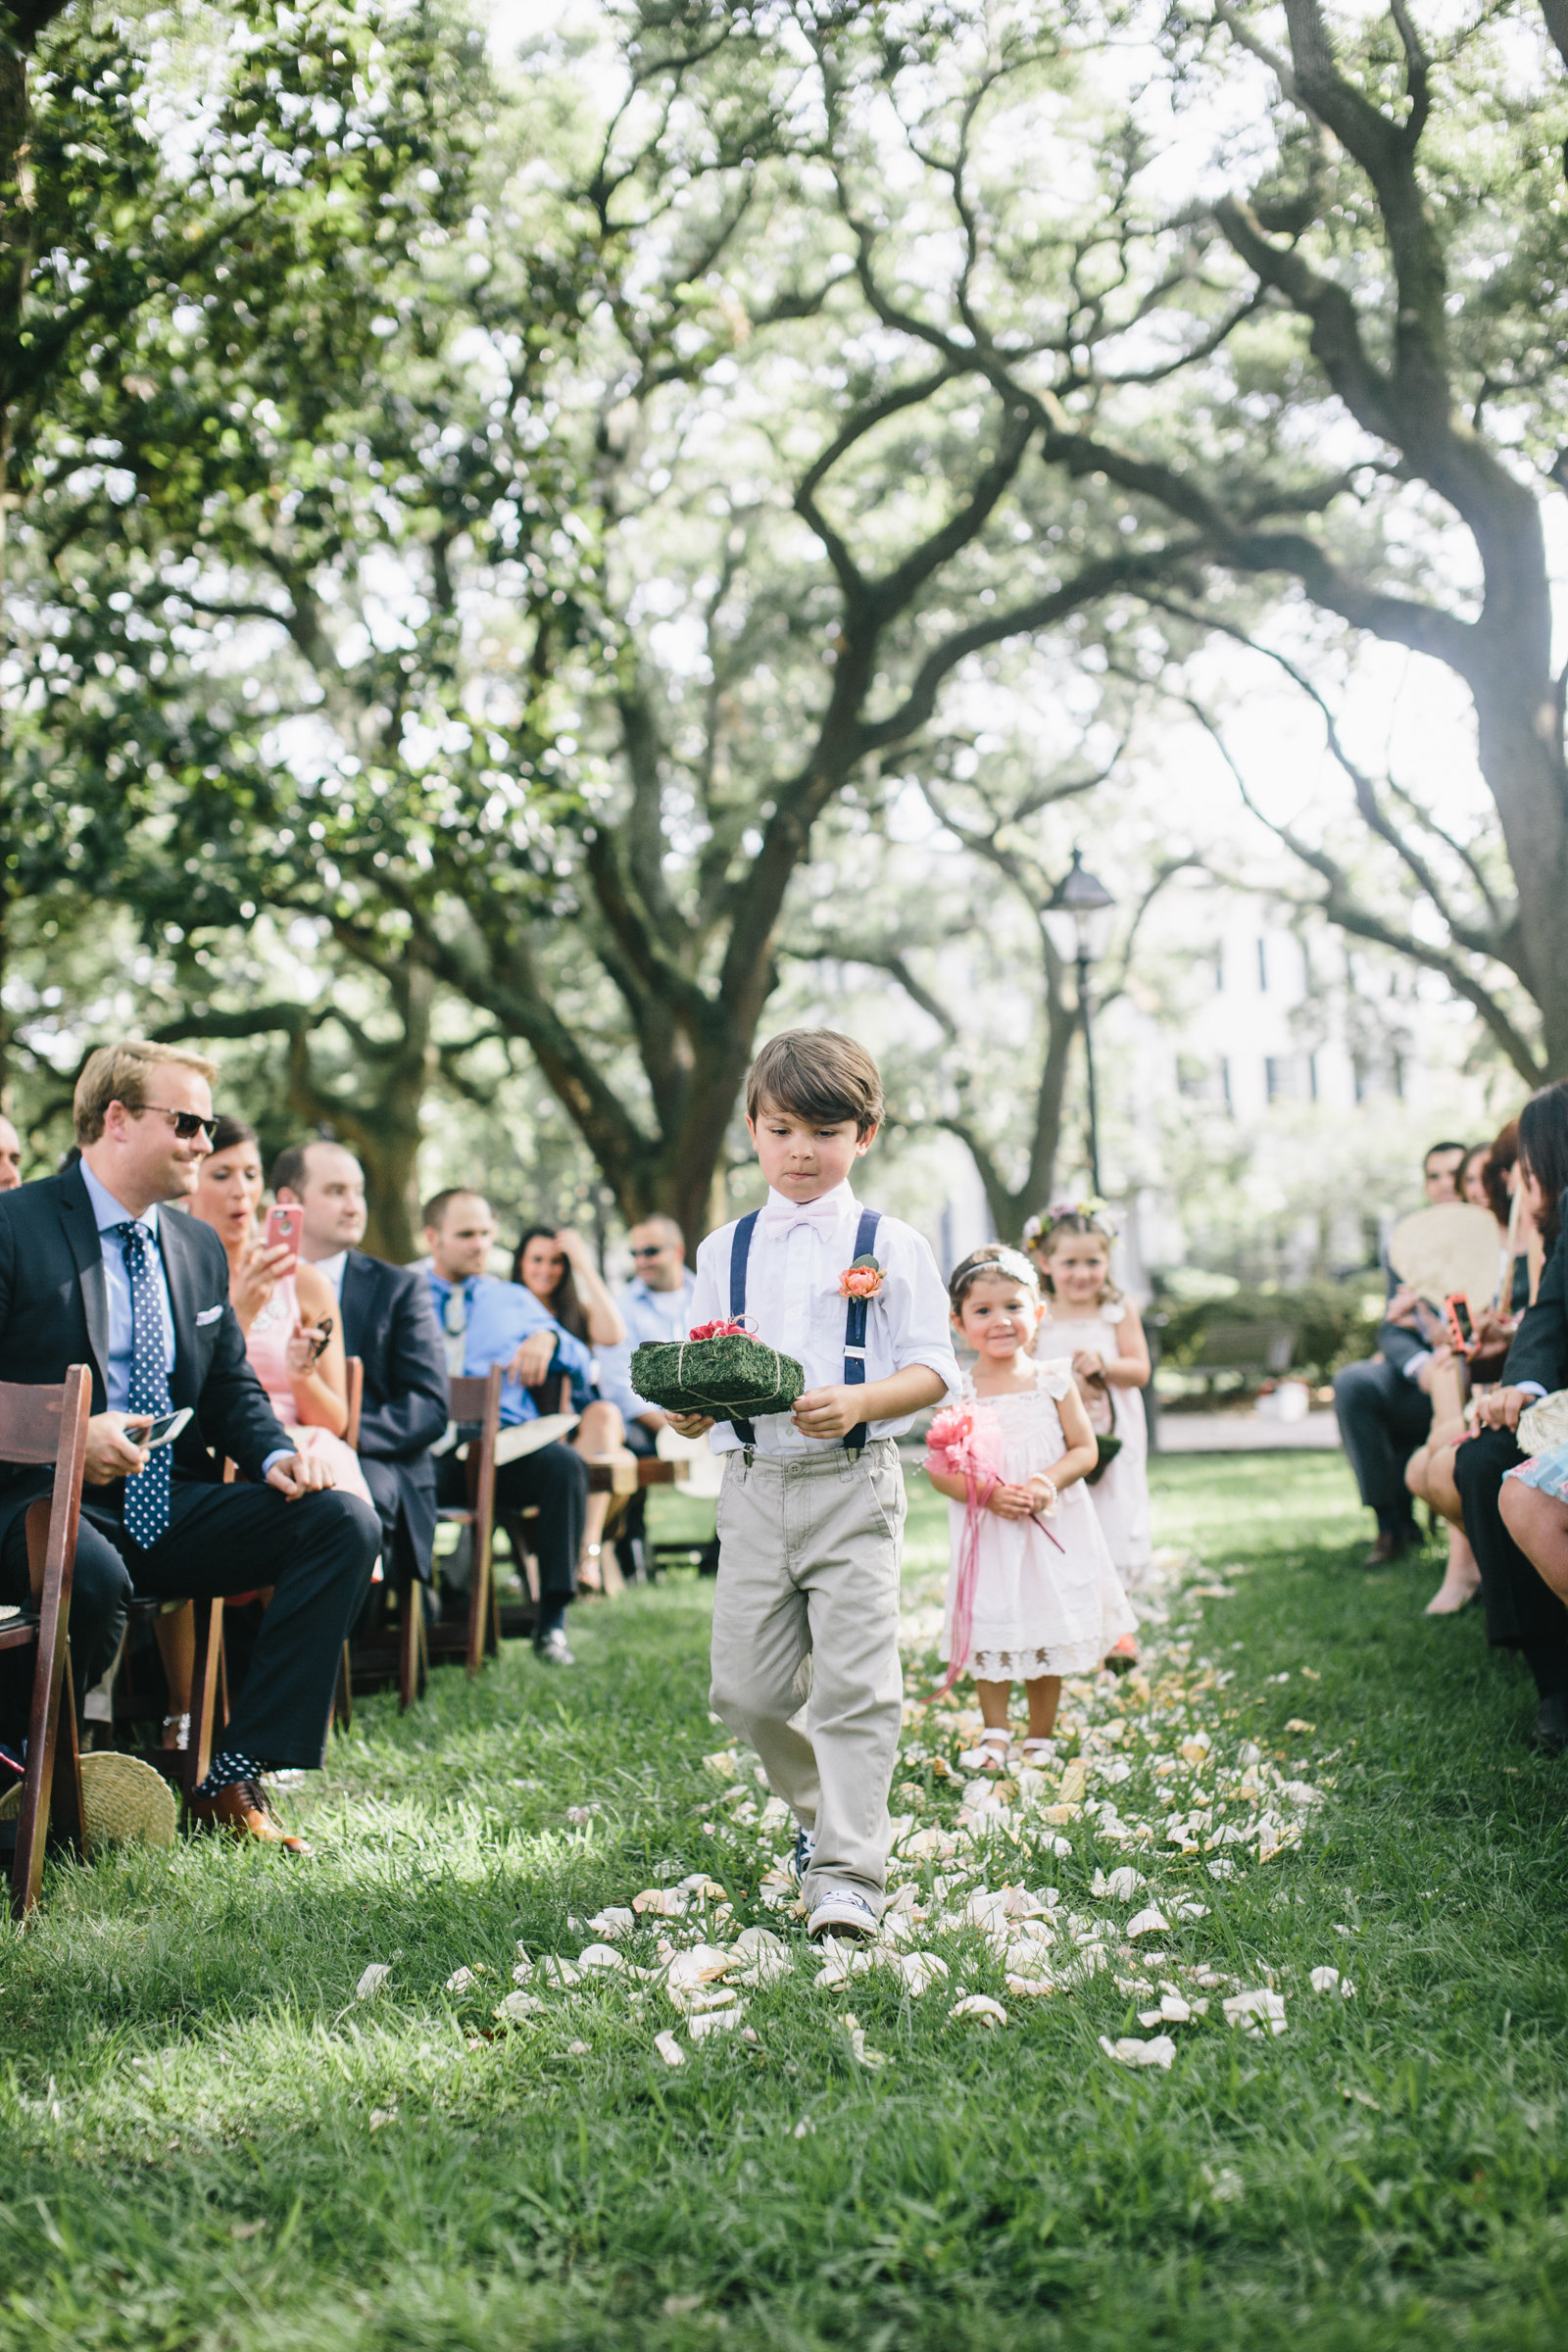 mackensey-alexander-photography-ivory-and-beau-bridal-boutique-from-this-day-forward-wedding-planning-sarah-seven-gwen-savannah-bridal-boutique-savannah-wedding-dresses-savannah-bridal-boutique-savannah-wedding-planner-savannah-weddings-32.jpg